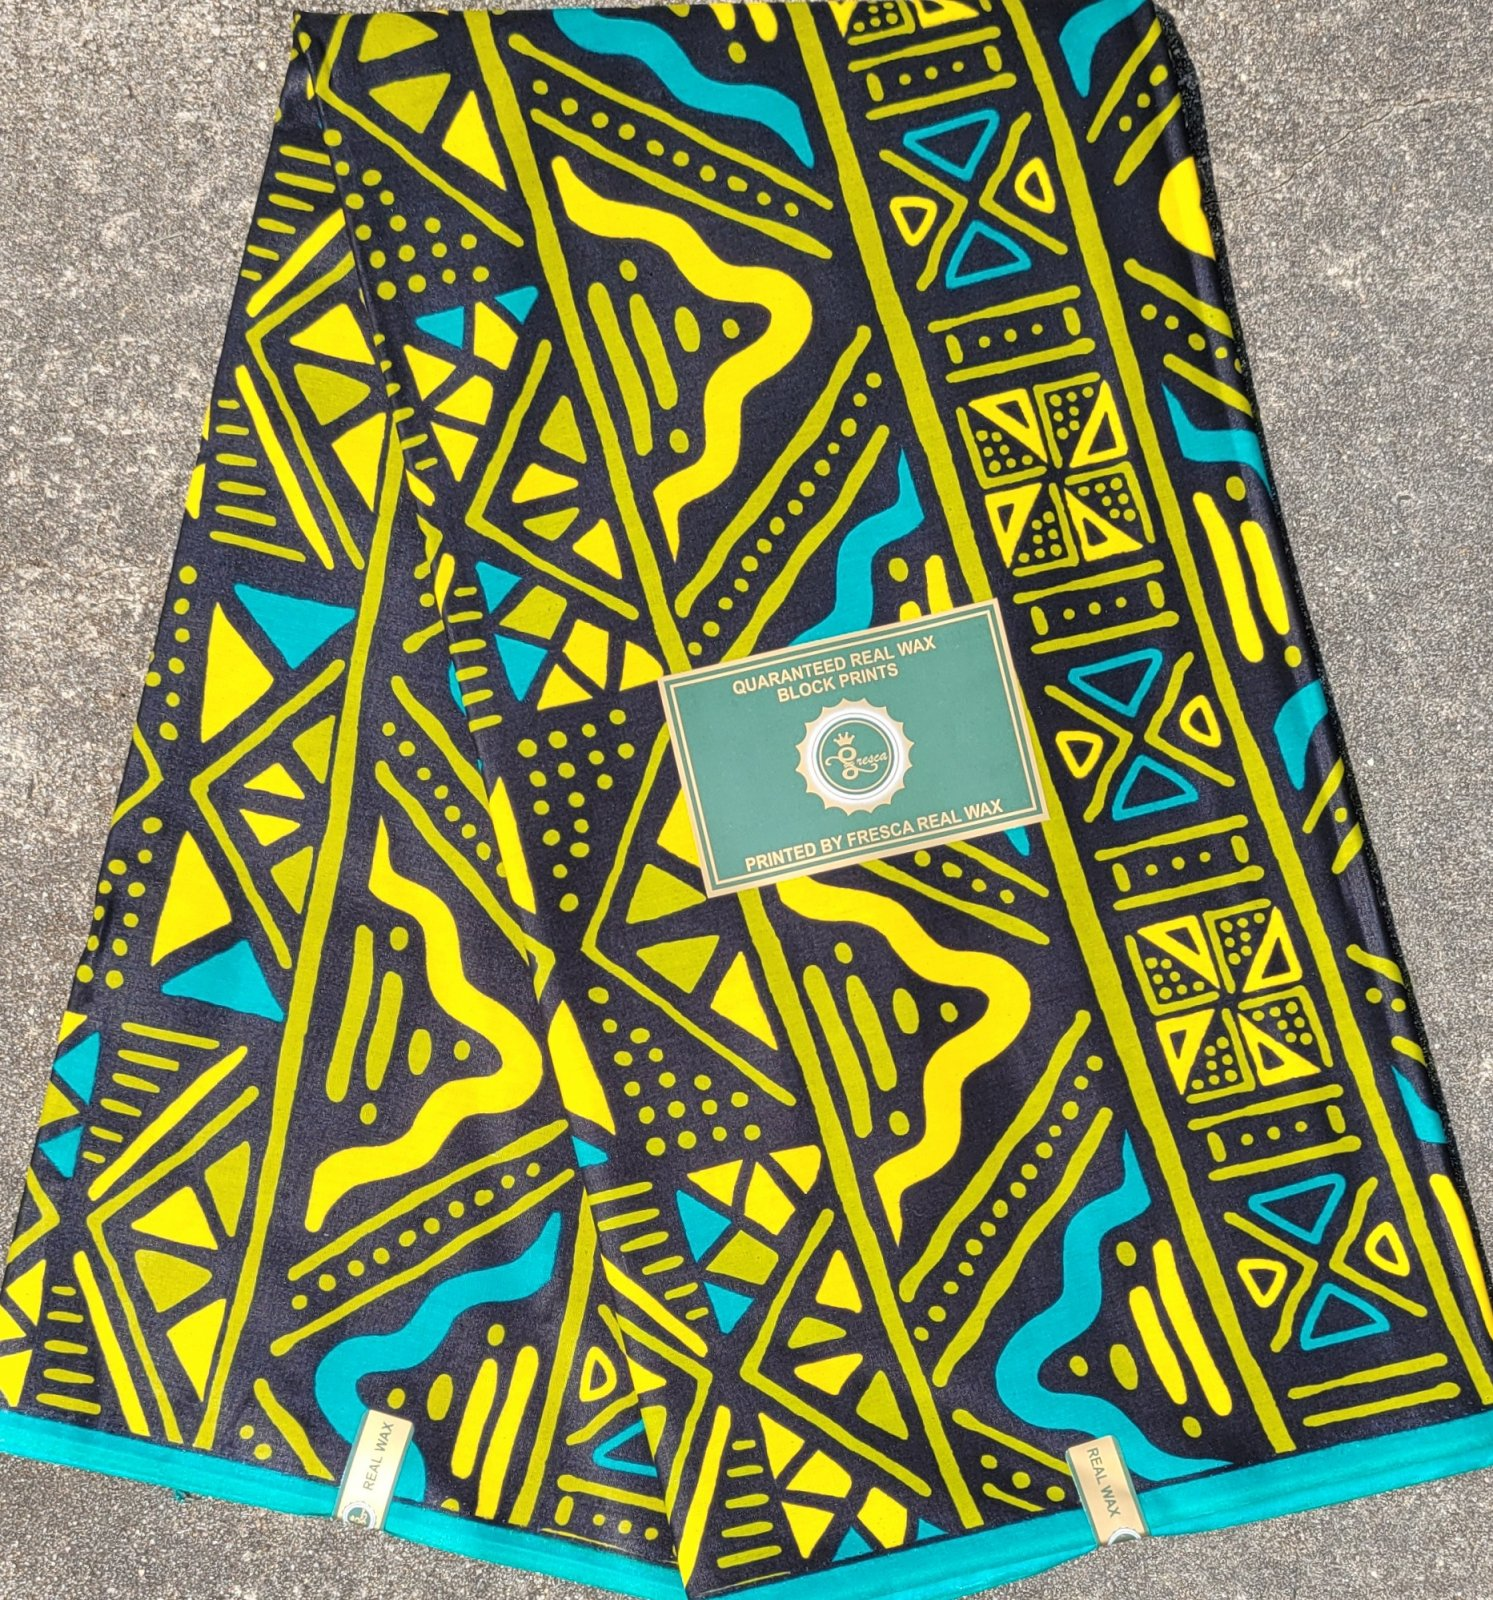 Teal, yellow, and olive African mudcloth-inspired Print Fabric #515